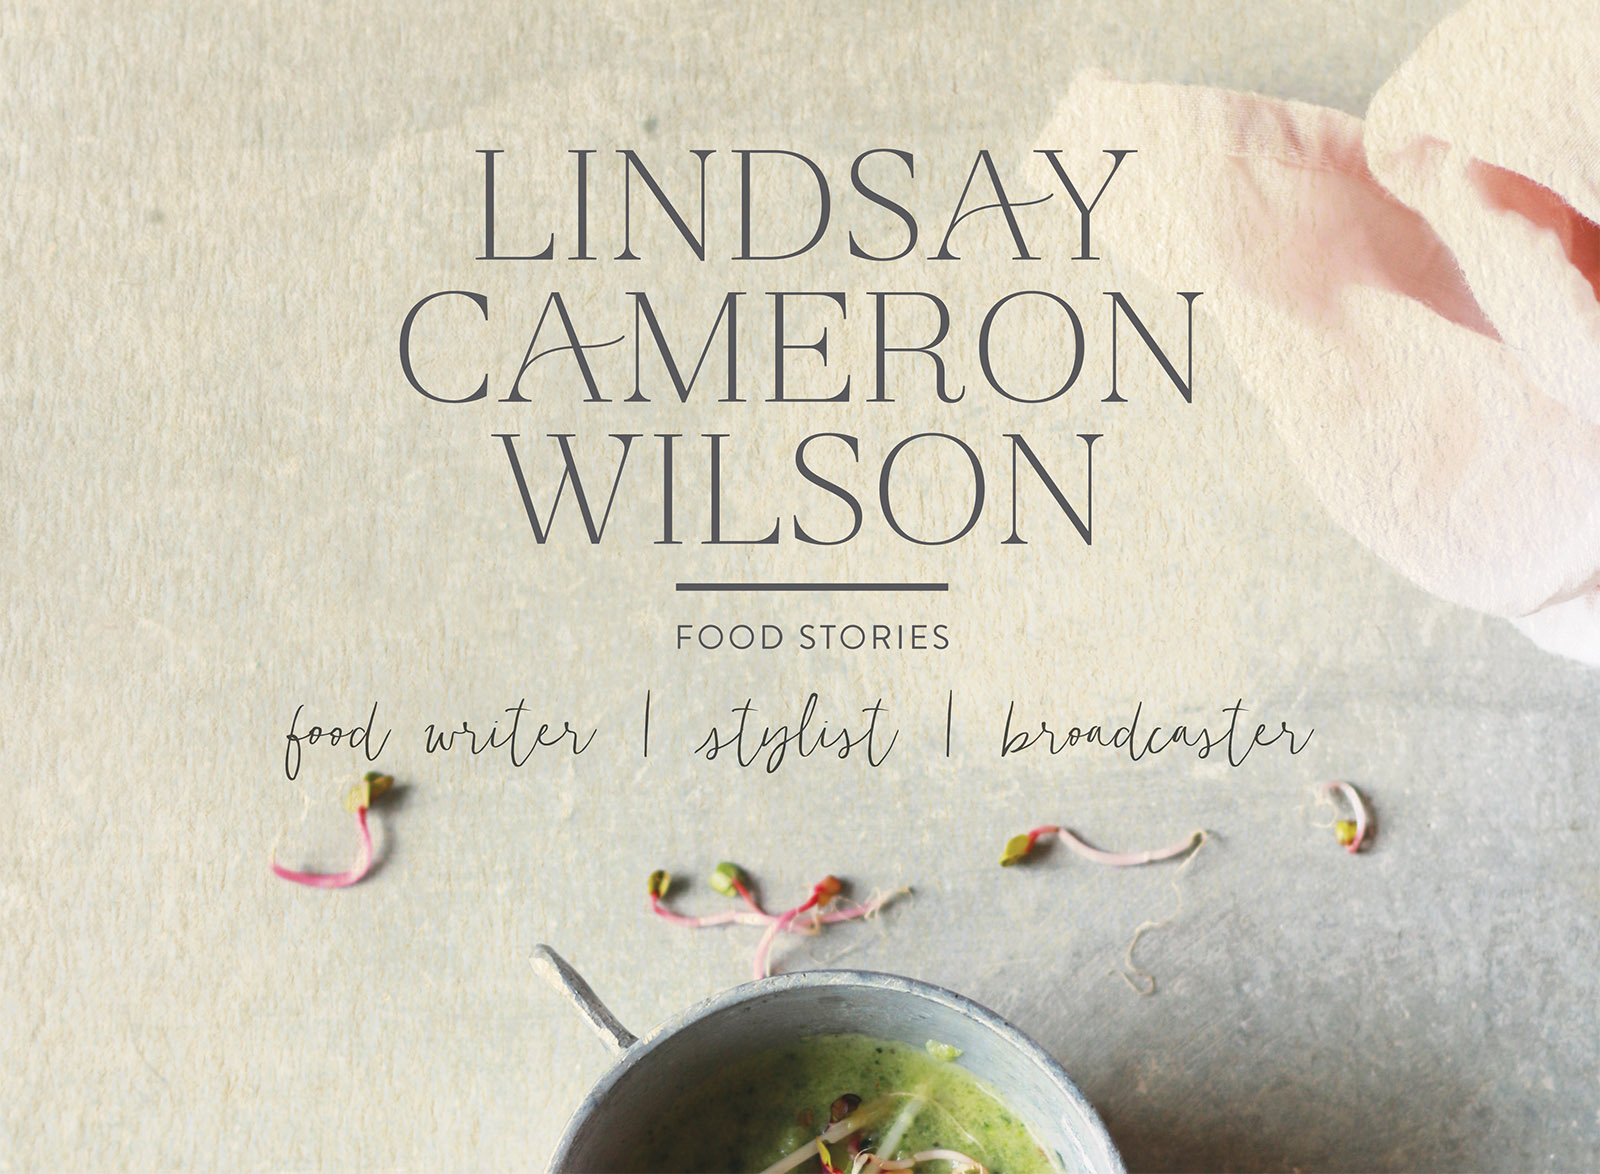 Lindsay Cameron Wilson, food writer, podcasts, food styling